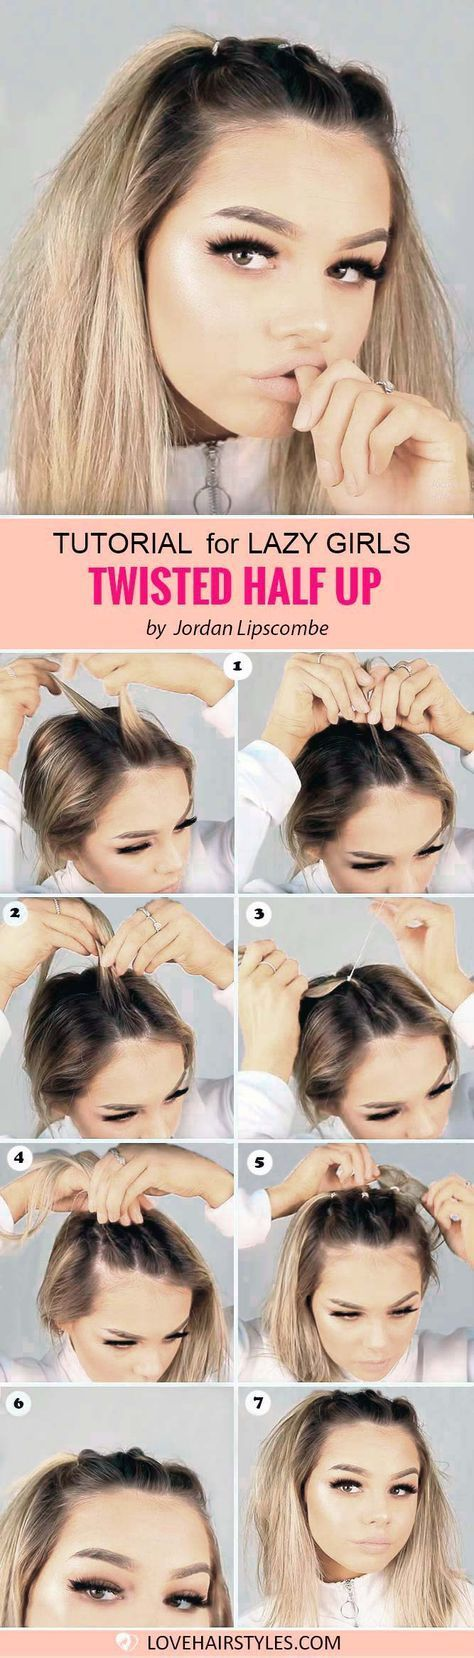 Cute Easy Hairstyles 1376 Best Hair Images On Pinterest  Hair Dos Hairdos And Hair Color